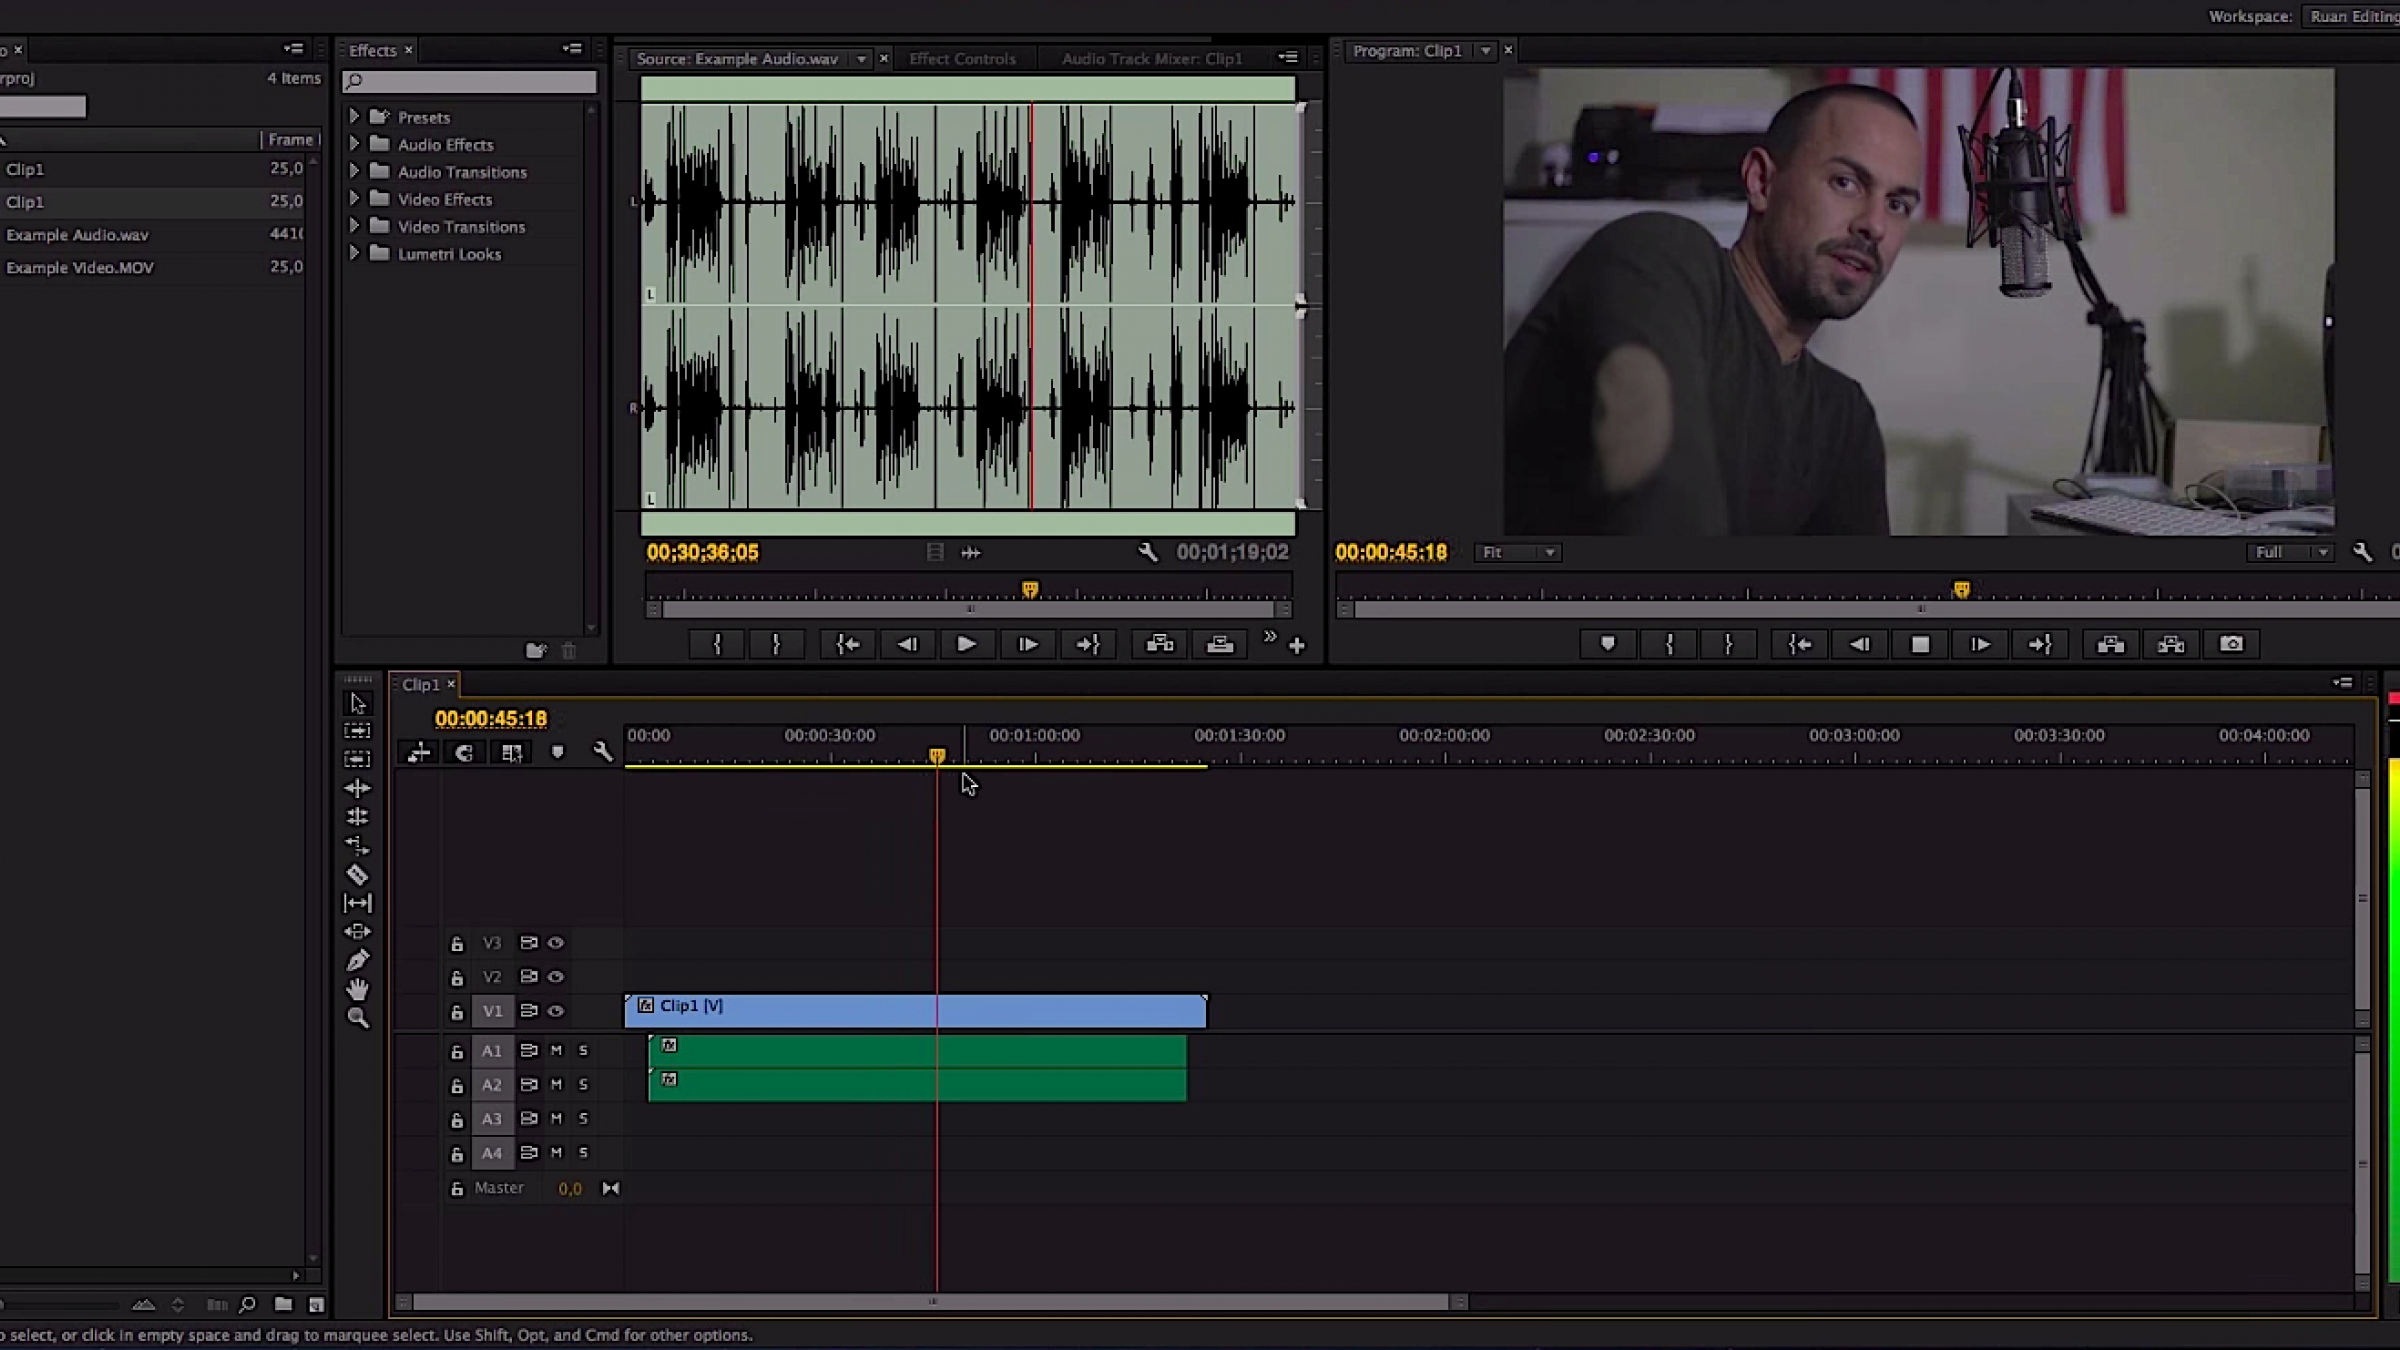 how to make audio fade out in premiere pro